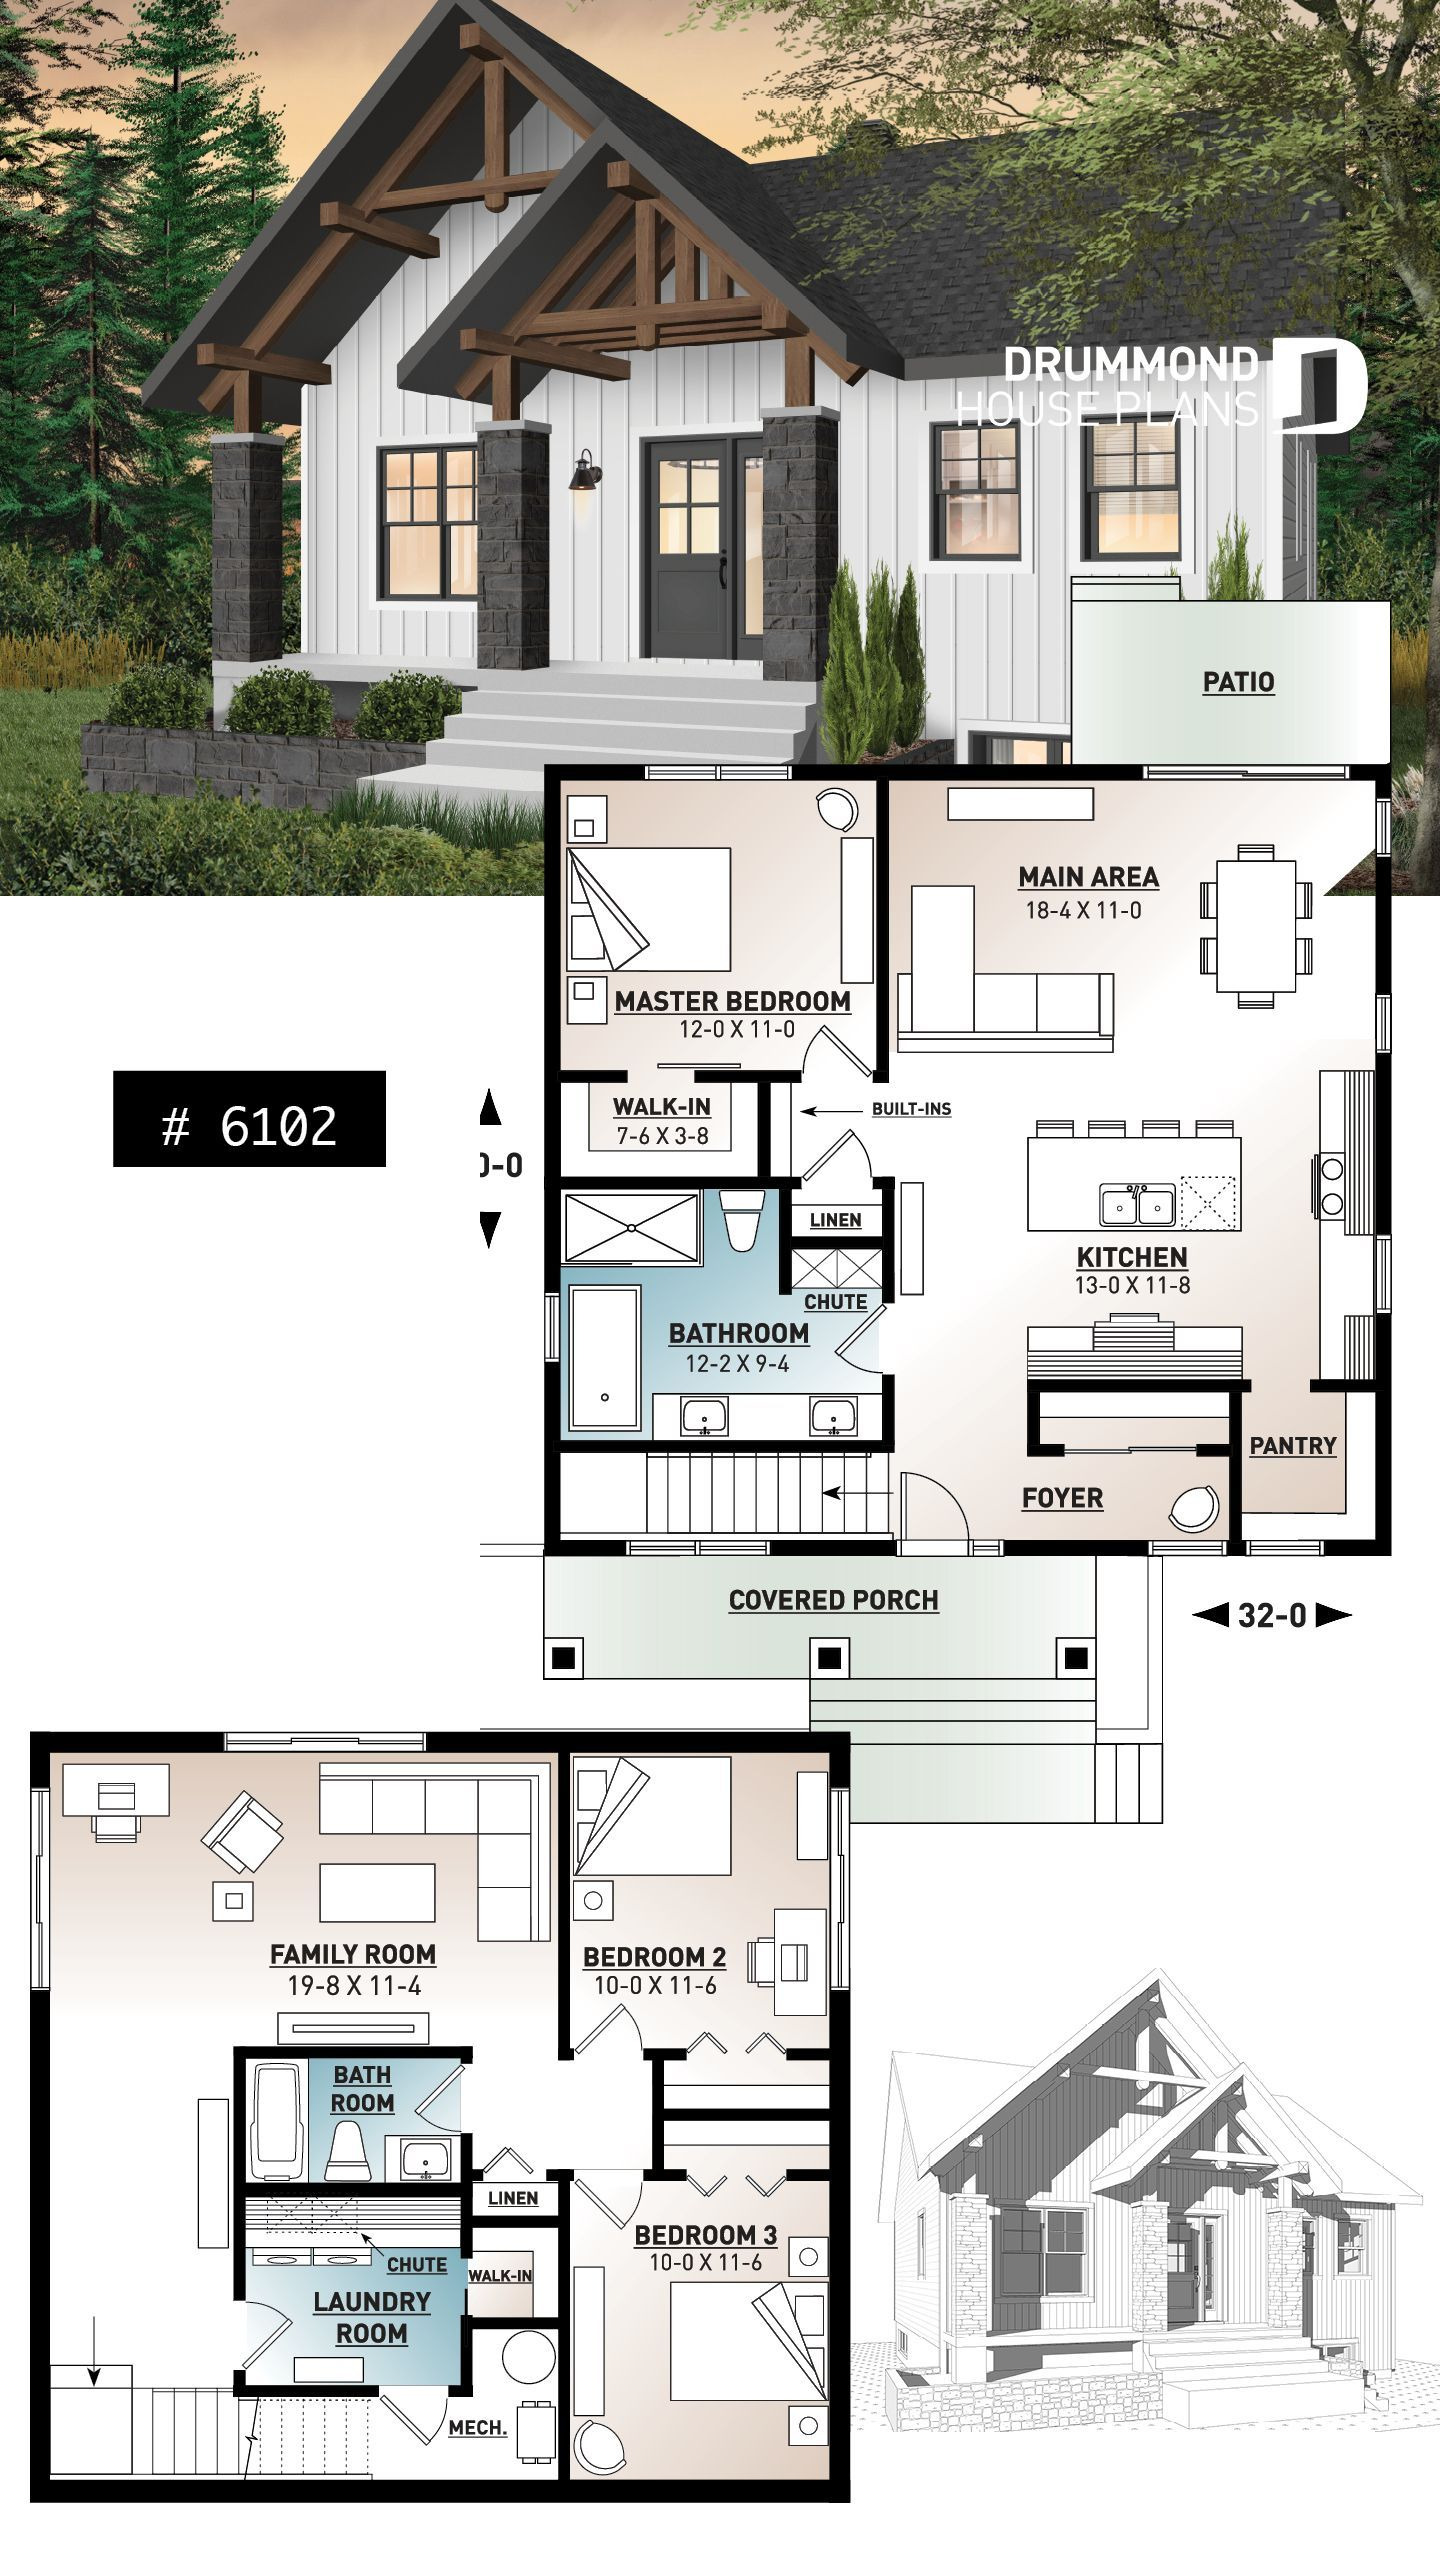 Small Rustic House Plans Awesome Small and Affordable Bungalow House Plan with Master On Main